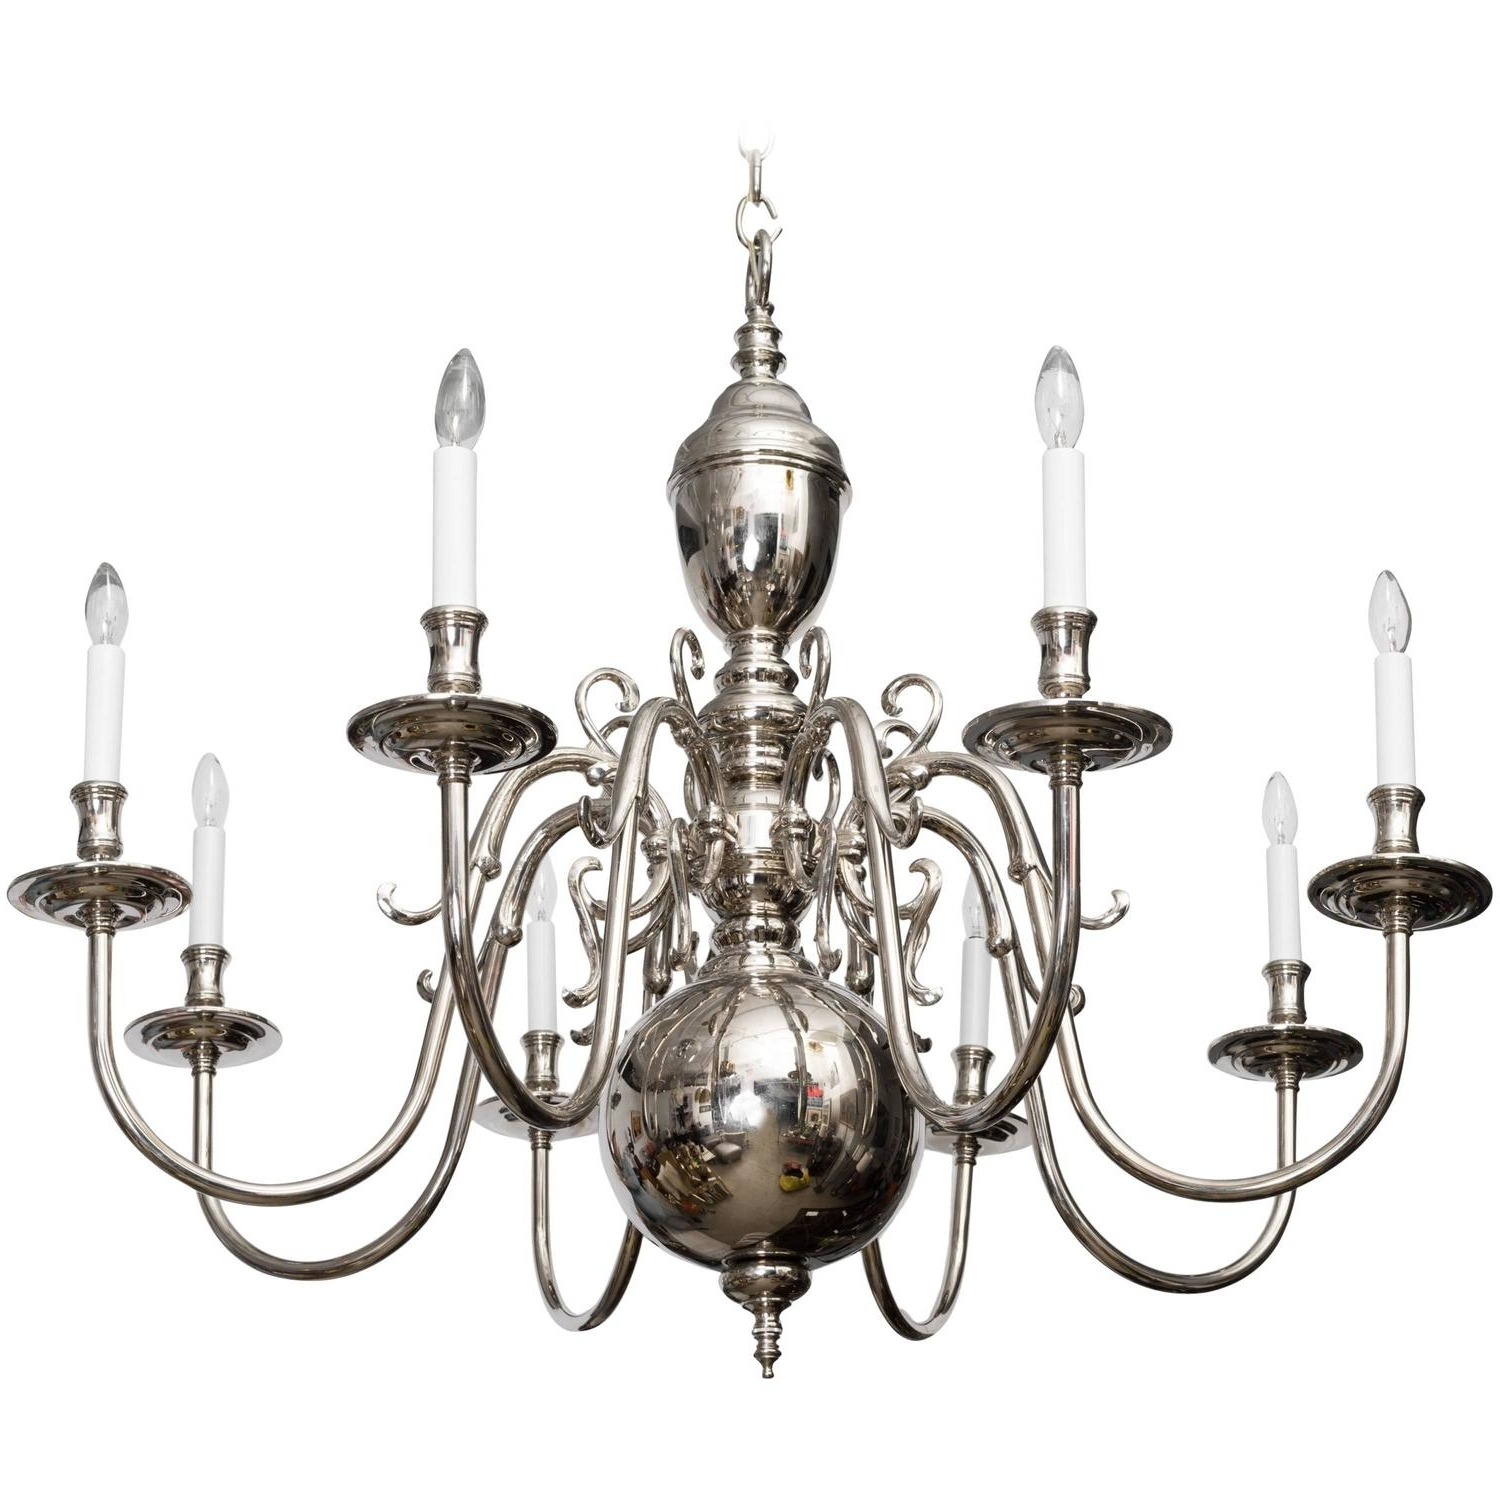 Georgian Chandeliers Throughout Most Recent Grand Scale Georgian Style Chandelier (View 14 of 20)